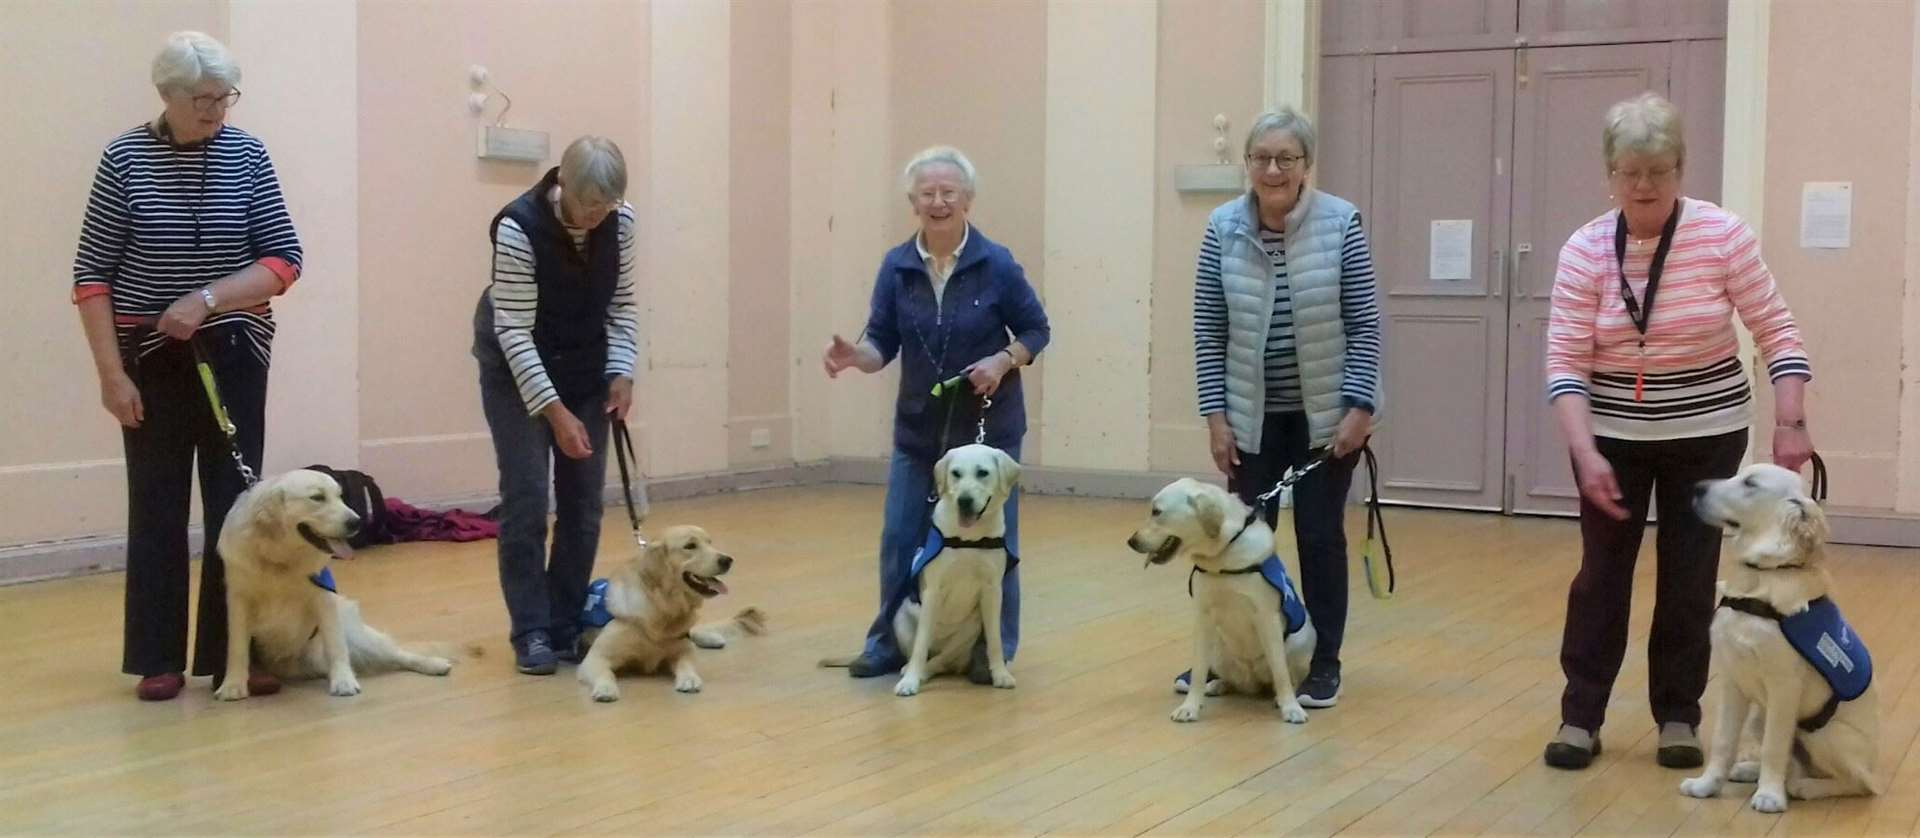 Gathering for a class photo are (from left) Morag Thomson from Craigellachie with Hoover and his litter brother Hudson with Ruth Cocker from Skye of Curr; Margaret Woodward from Rafford with Bramble and her litter sister Bubbles with Helen Simpson, also from Craigellachie. Anna Roberts, a boarder from Forres, is holding Gizmo, who is walked by Anne Simpson of Nairn. Gizmo is son of a puppy previously walked here by Morag and the nephew of two others. One of these, Charlie, became a stud dog and produced 99 pups which went into the training system.